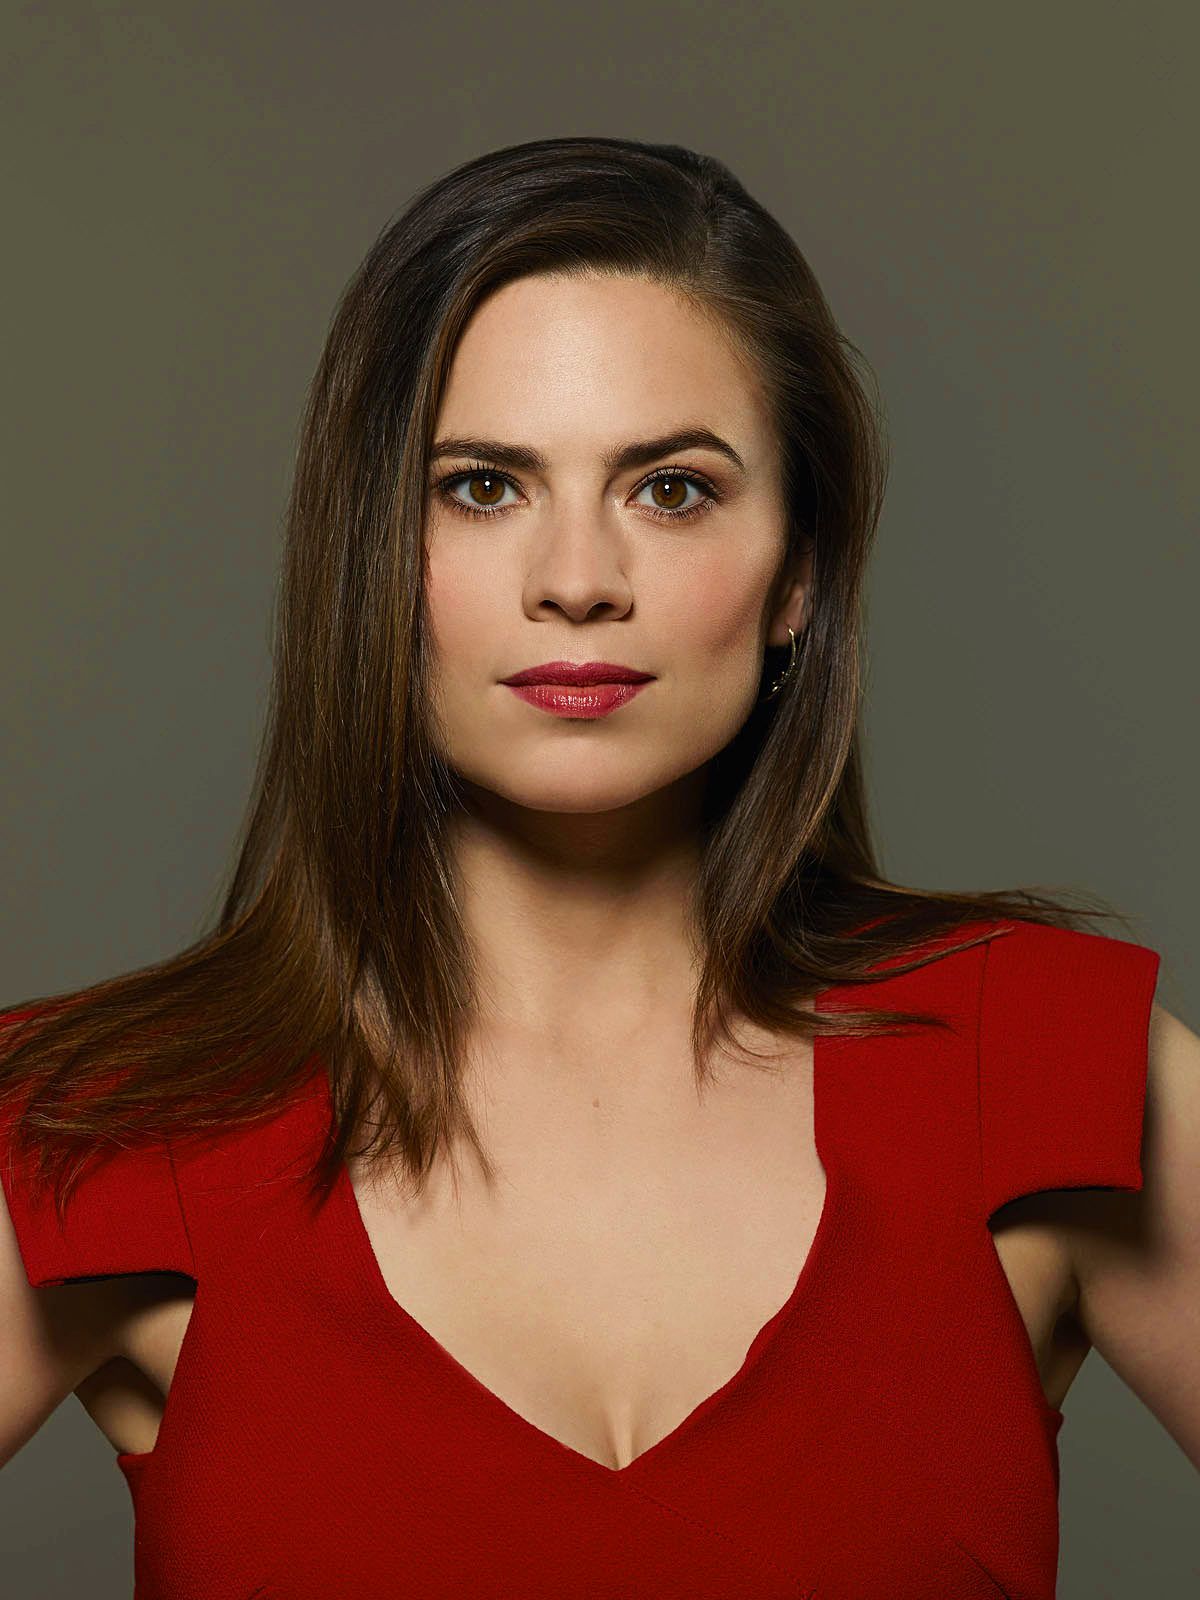 Pictures Hayley Atwell nudes (47 foto and video), Topless, Paparazzi, Boobs, legs 2017